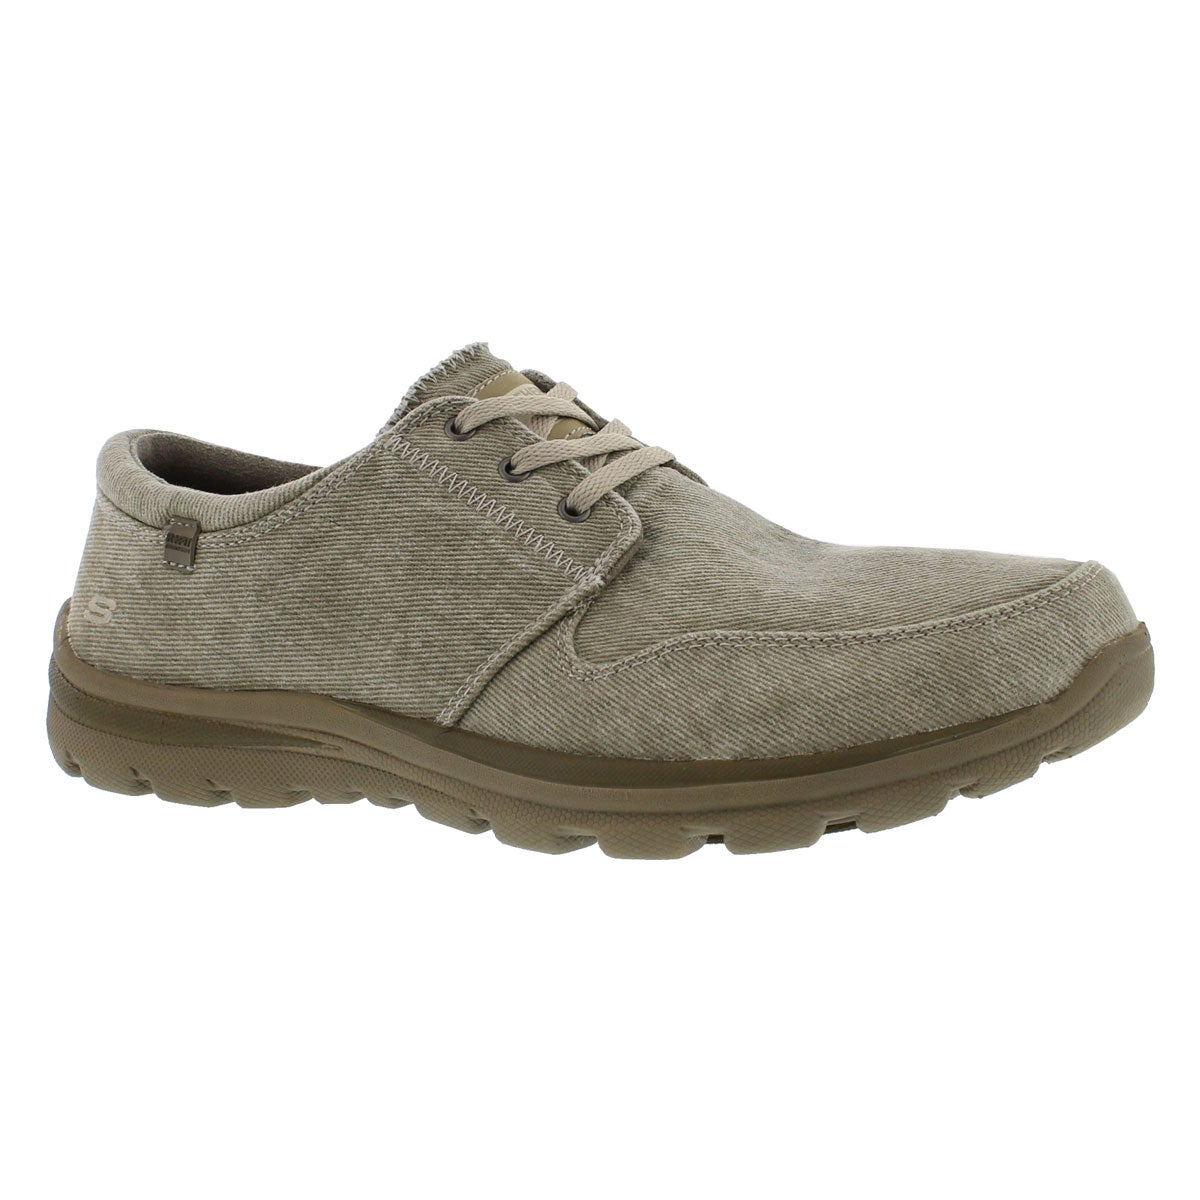 Men's SUPERIOR ELVIN taupe canvas lace up shoes